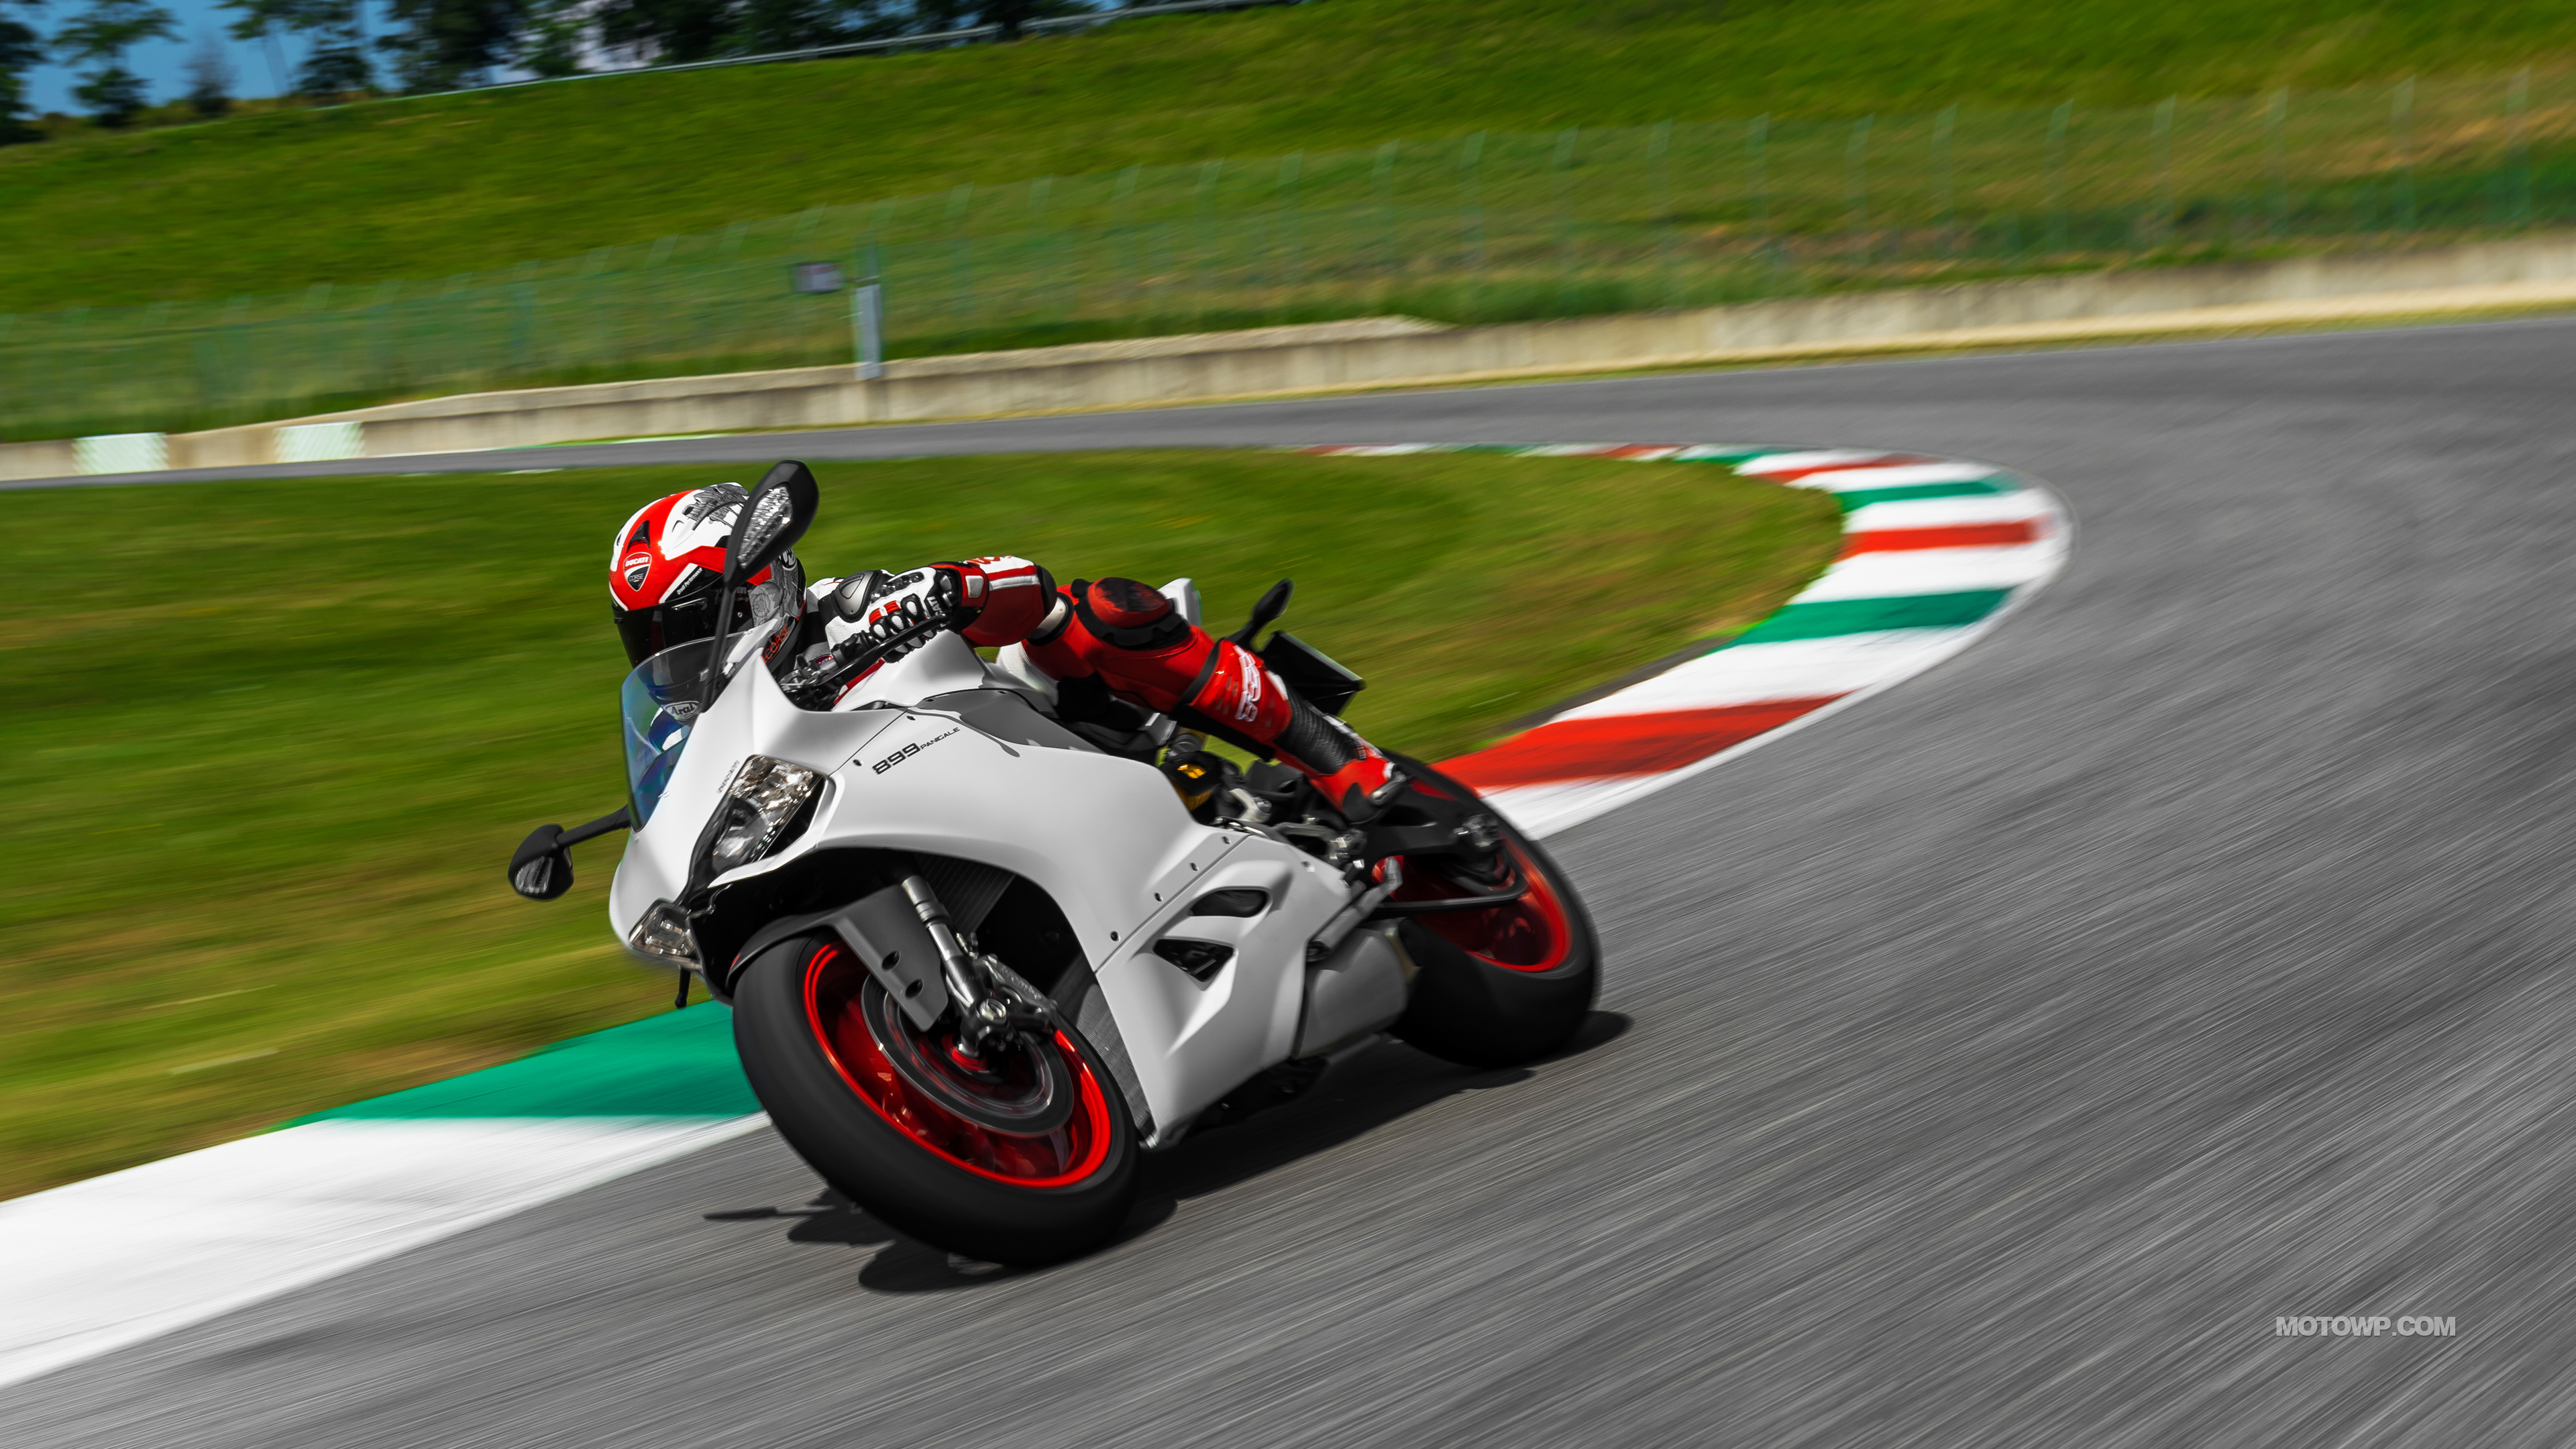 motorcycles desktop wallpapers ducati superbike 899 panigale - 2014